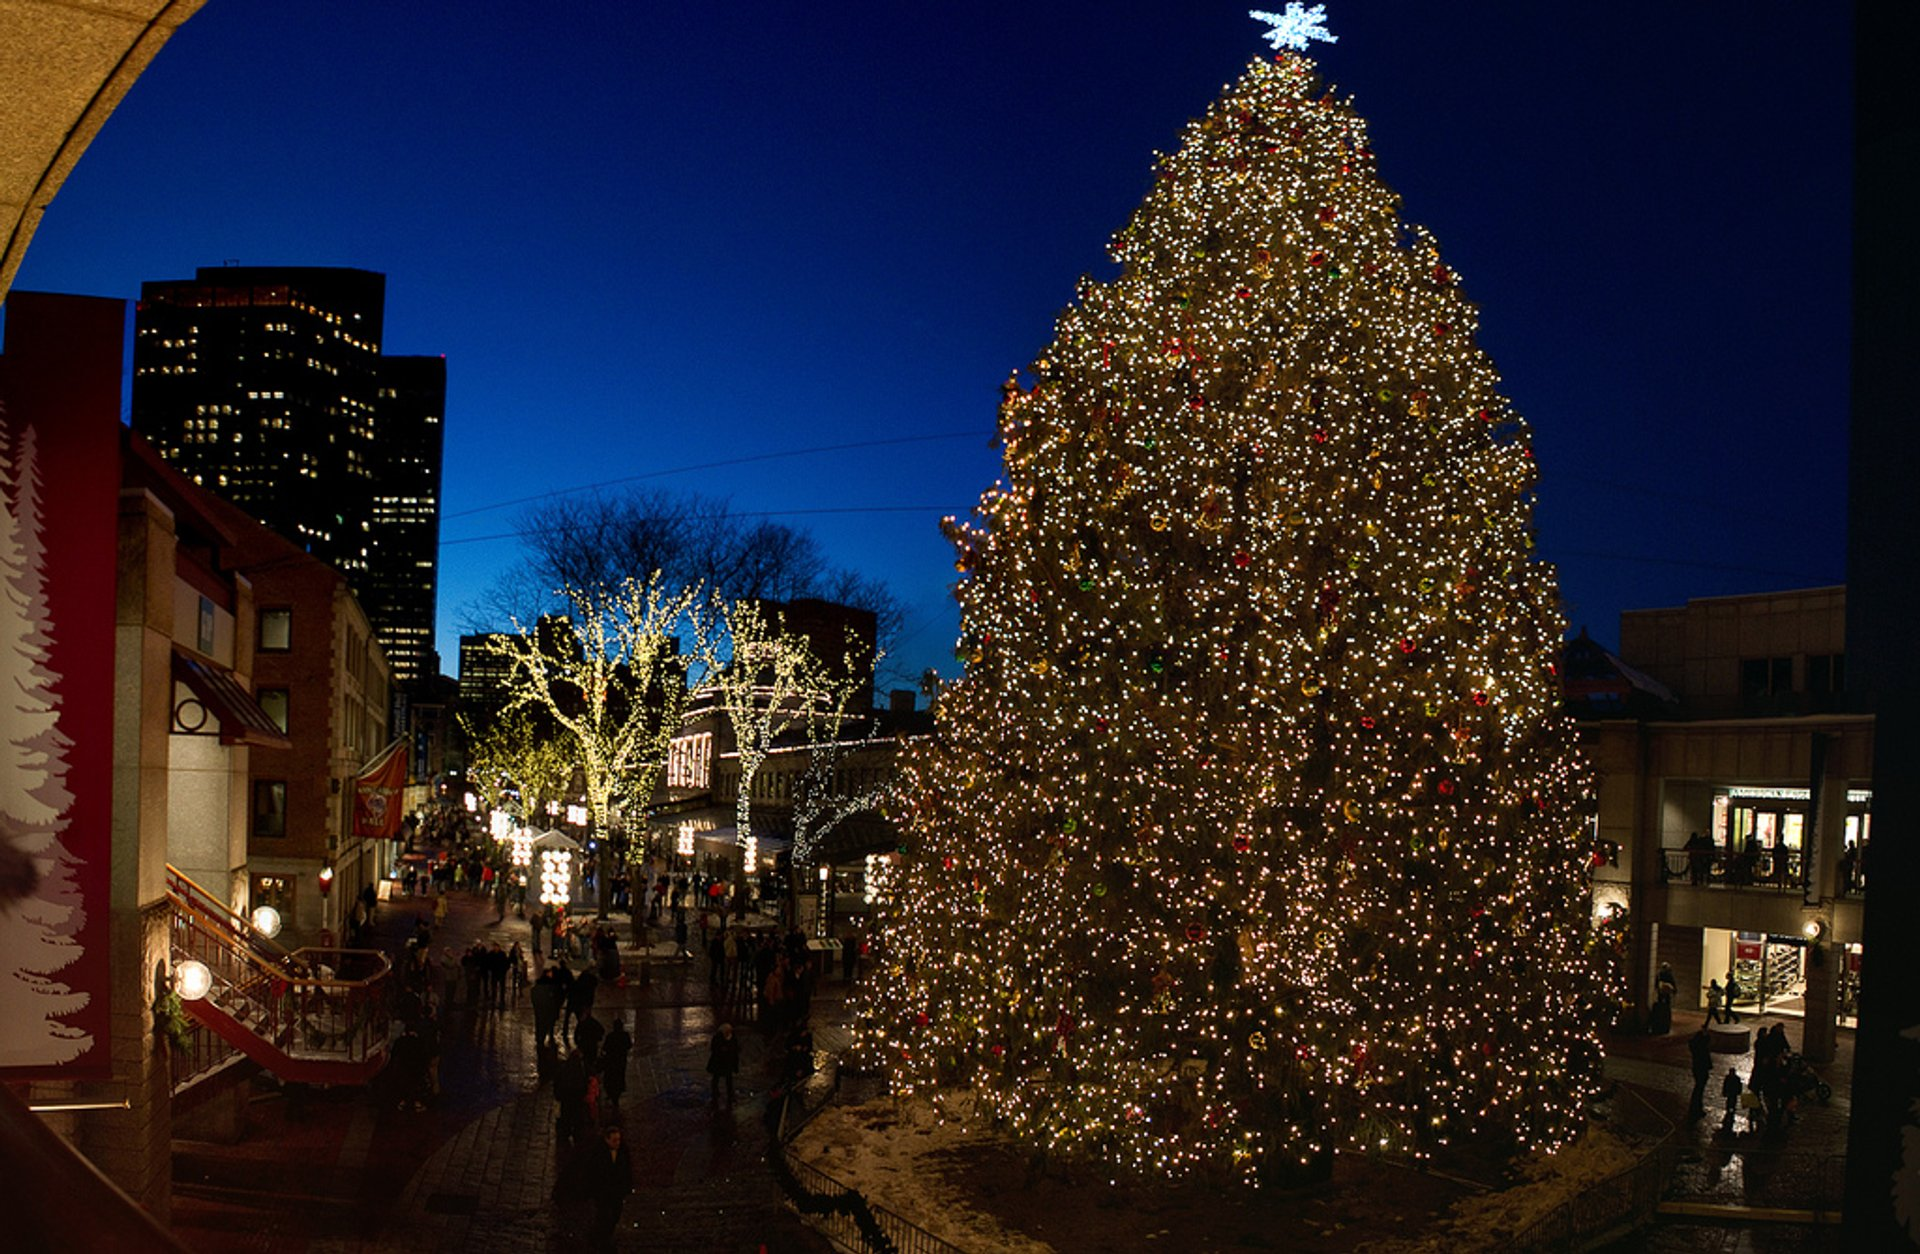 Boston Christmas Lights.Christmas Lights 2019 2020 In Boston Dates Map